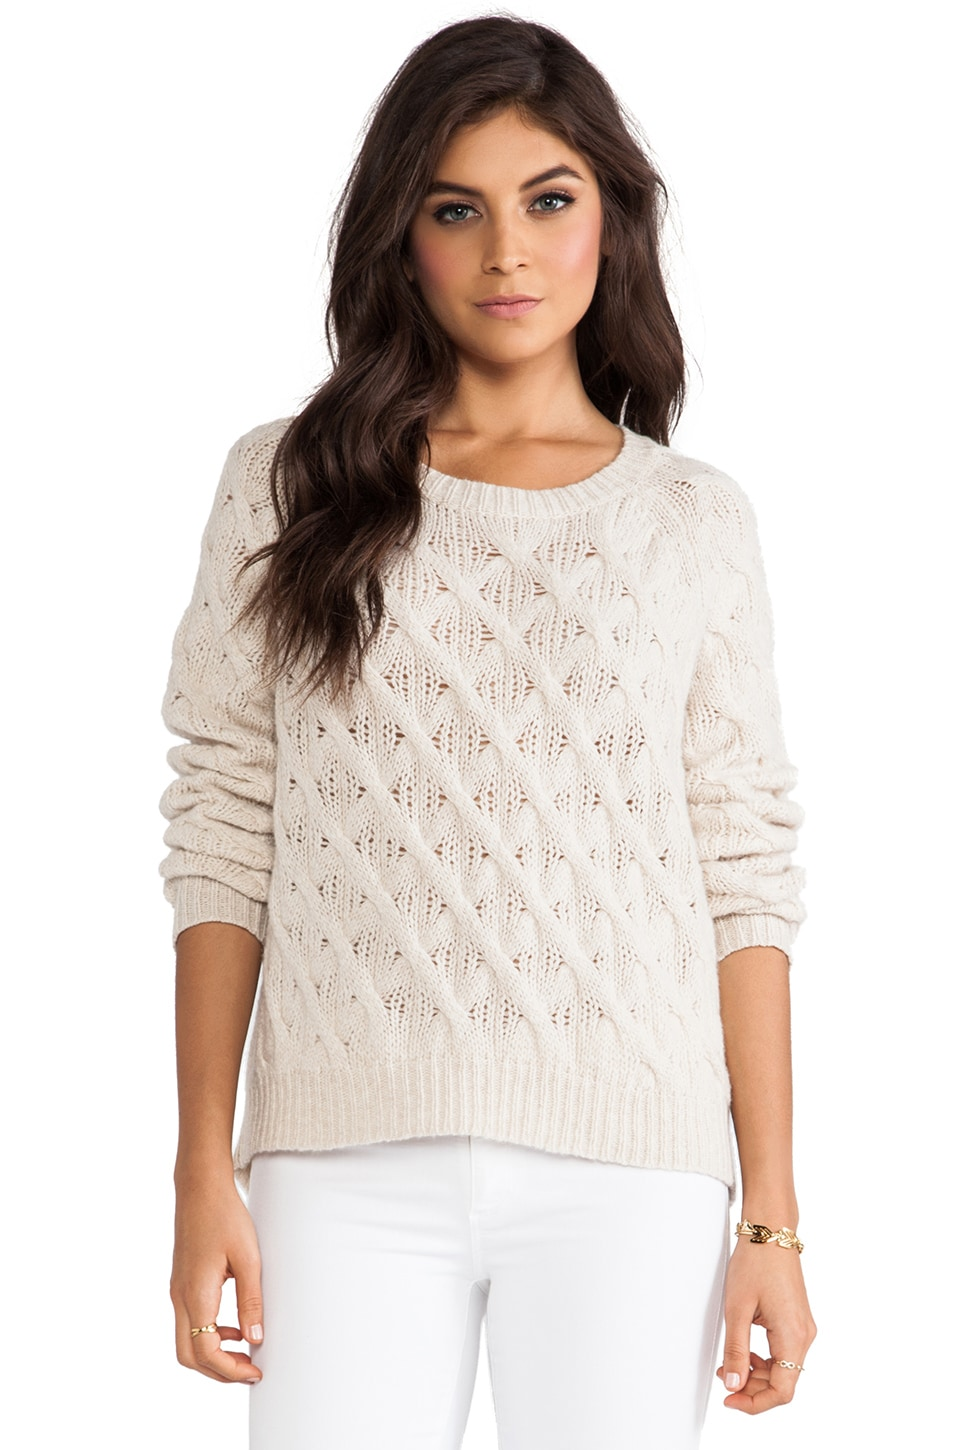 Inhabit Cashmere Chainette Sweater in Camel